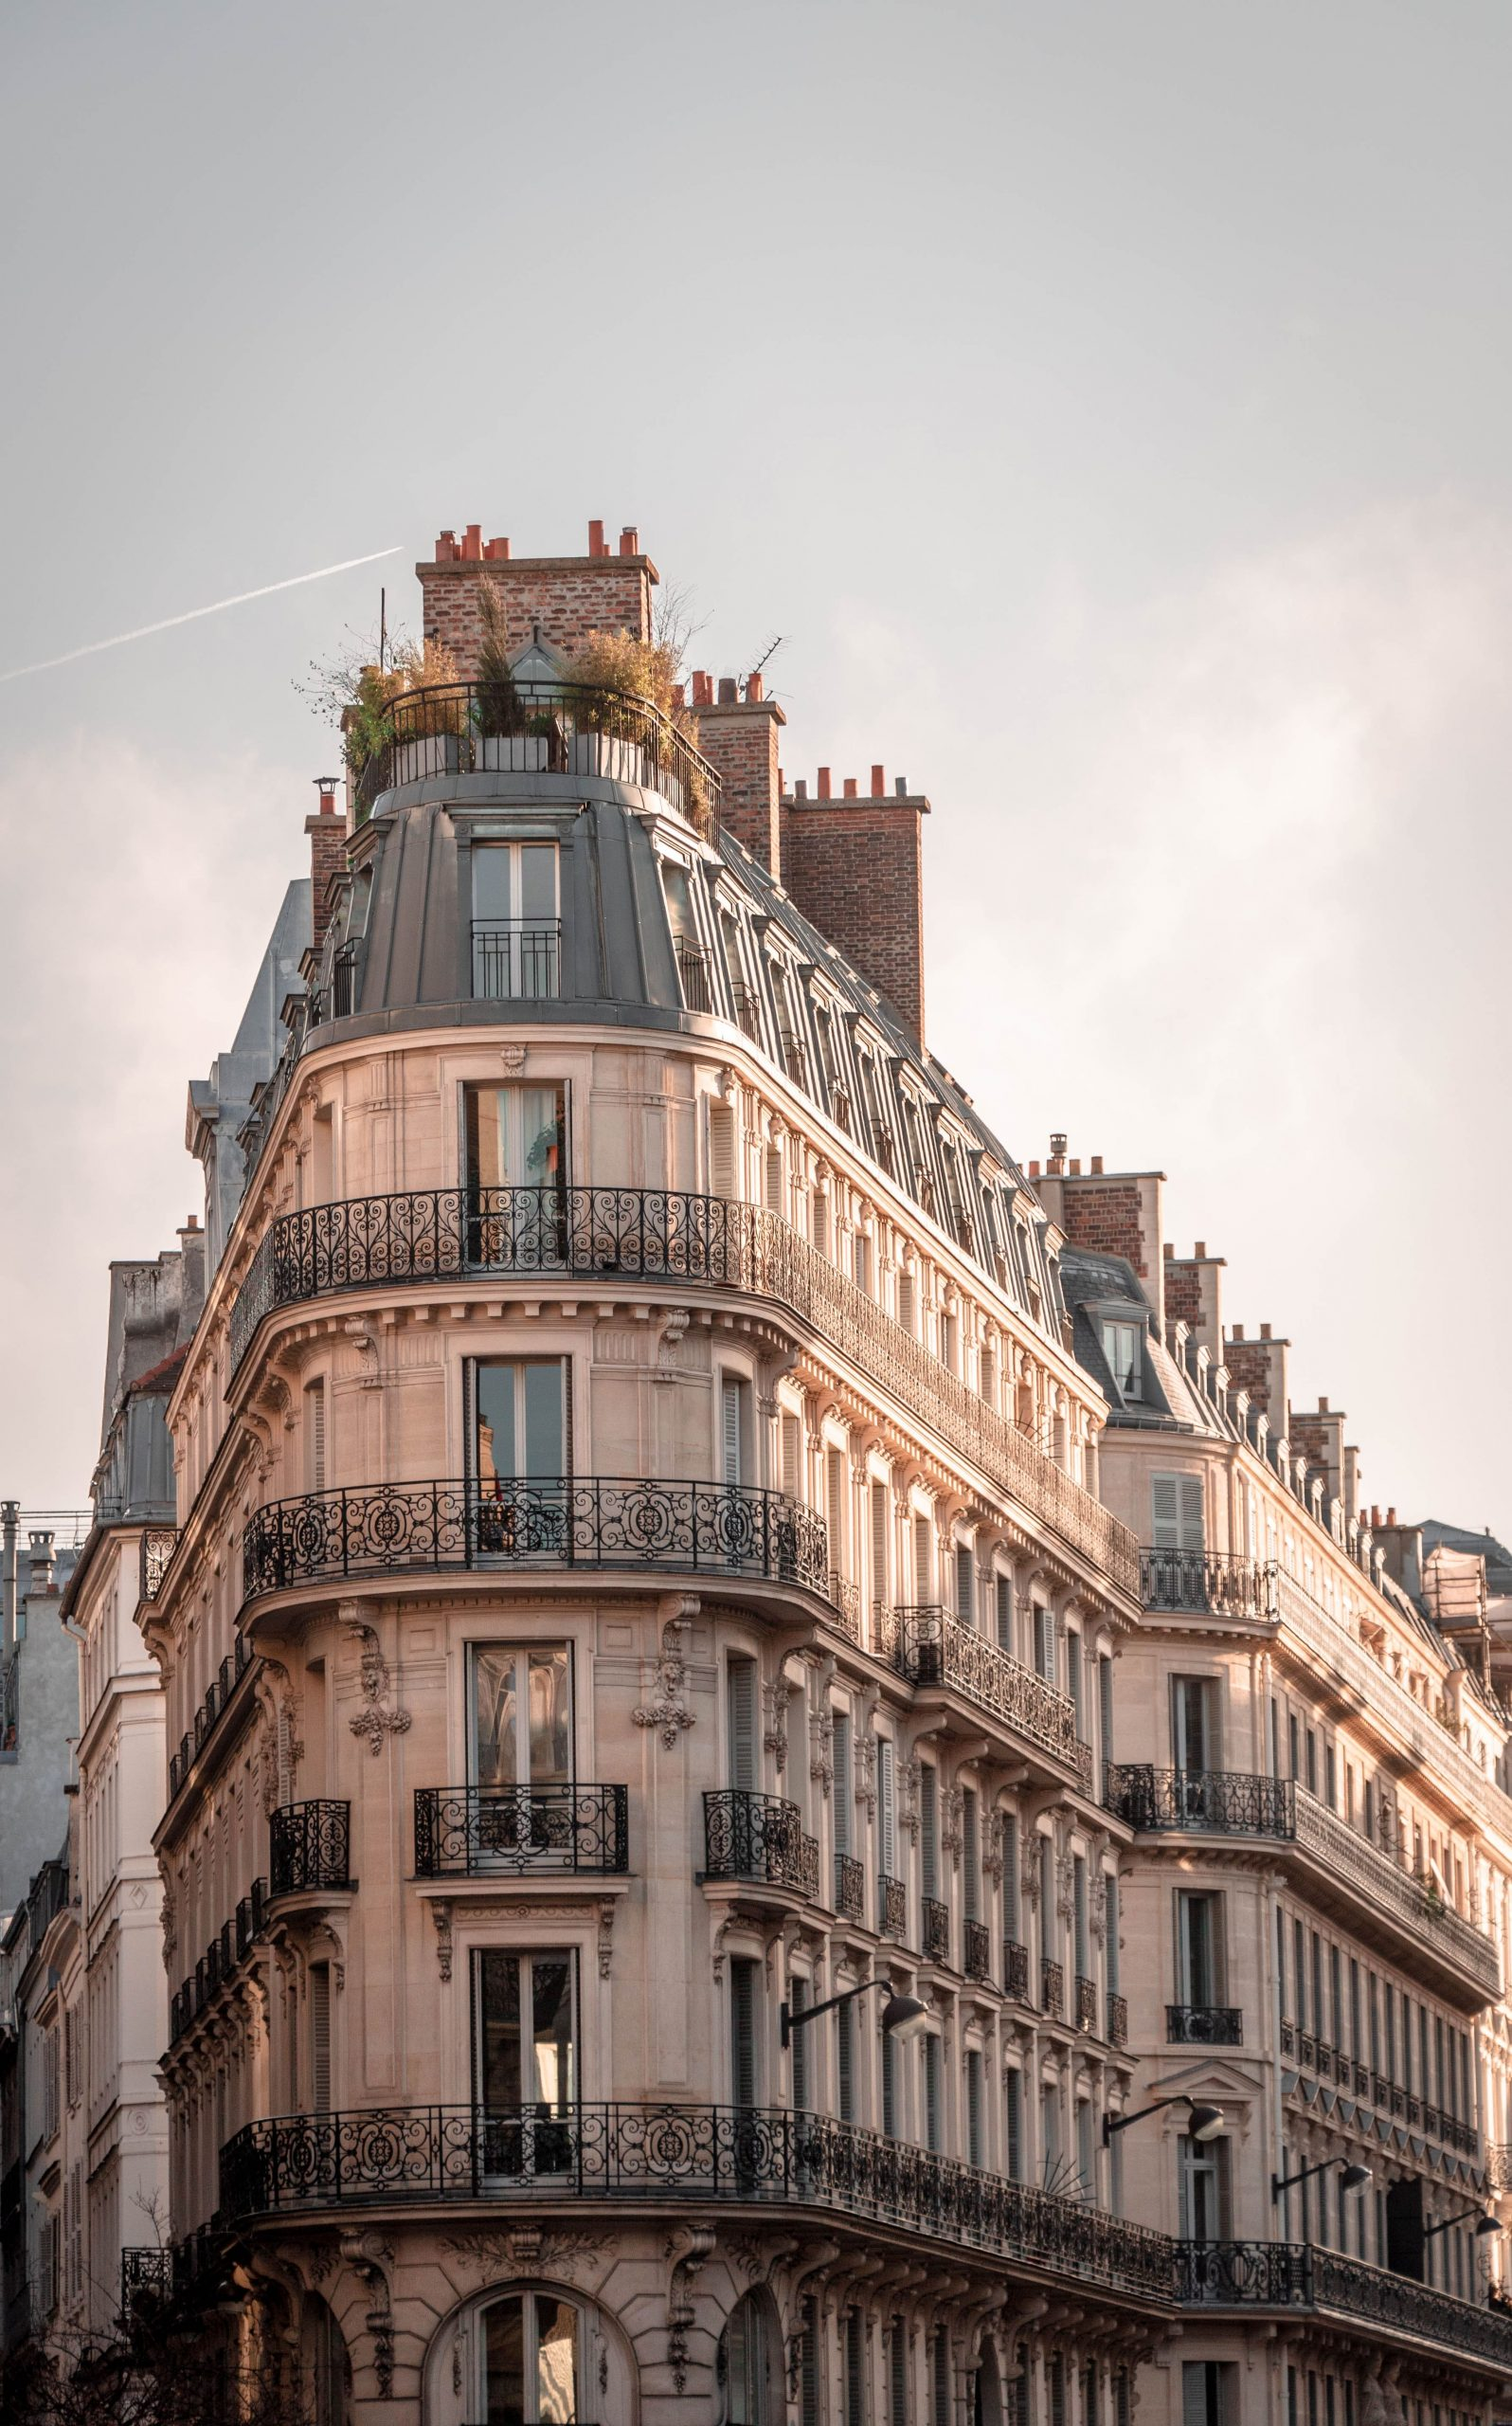 valorisation immobilière, homestaging, home stager, immobilier coronavirus, covid19, covid, taux d'intérêt, valeur immobilière, valeur d'un bien immobilier, comment valoriser un bien immobilier, valoriser, actif immobilier, rendements, comprendre la valorisation immobilière, investir dans l'immobilier, investissement immobilier, critères immobilier,